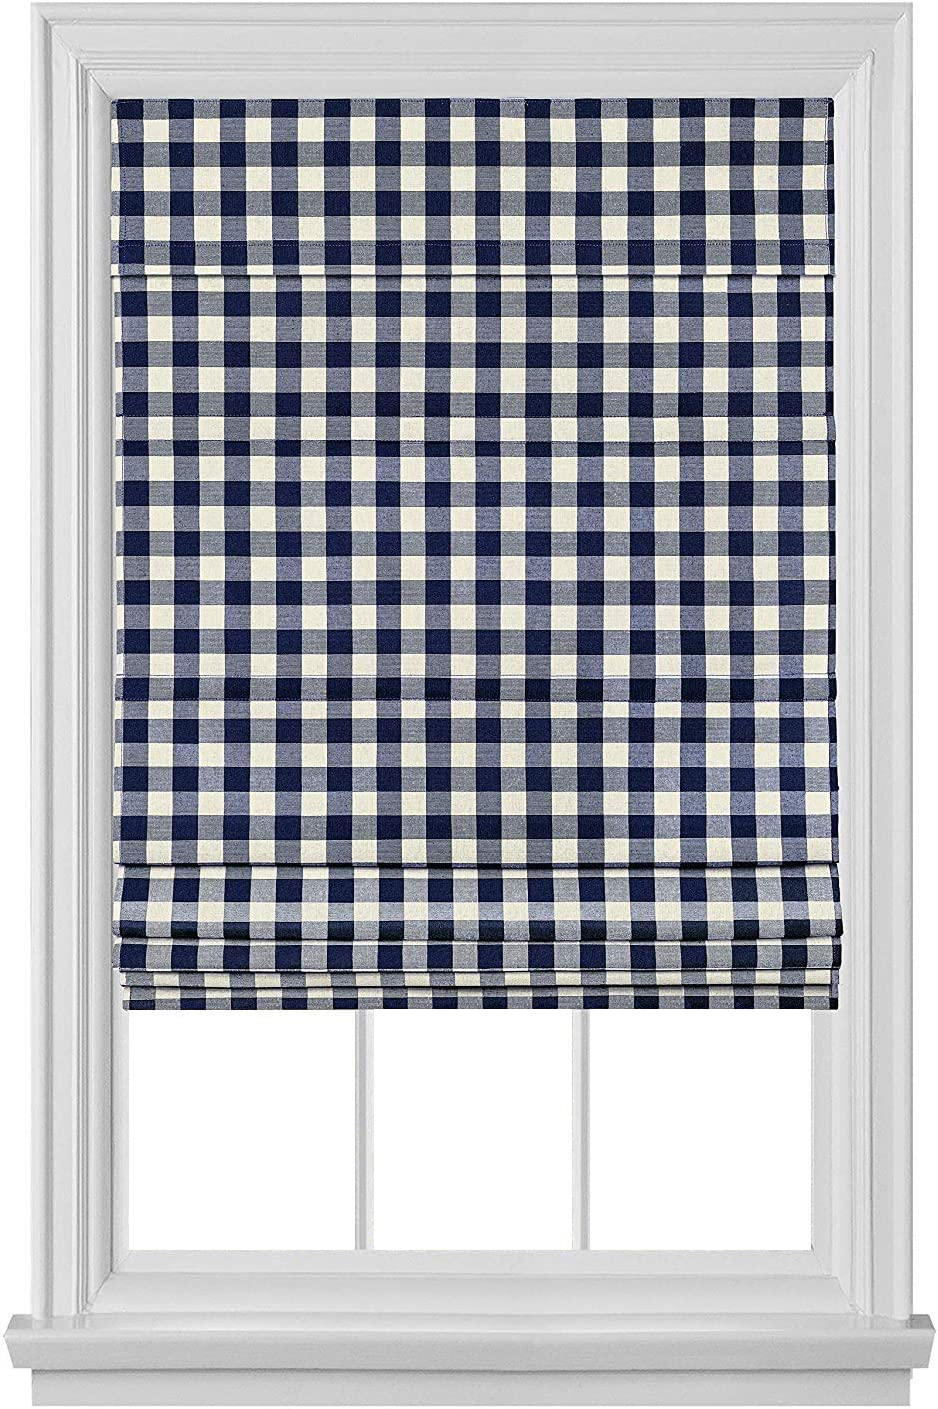 PowerSellerUSA Cordless Buffalo Plaid Bombing new work Roman Shades Curtains Manufacturer OFFicial shop for